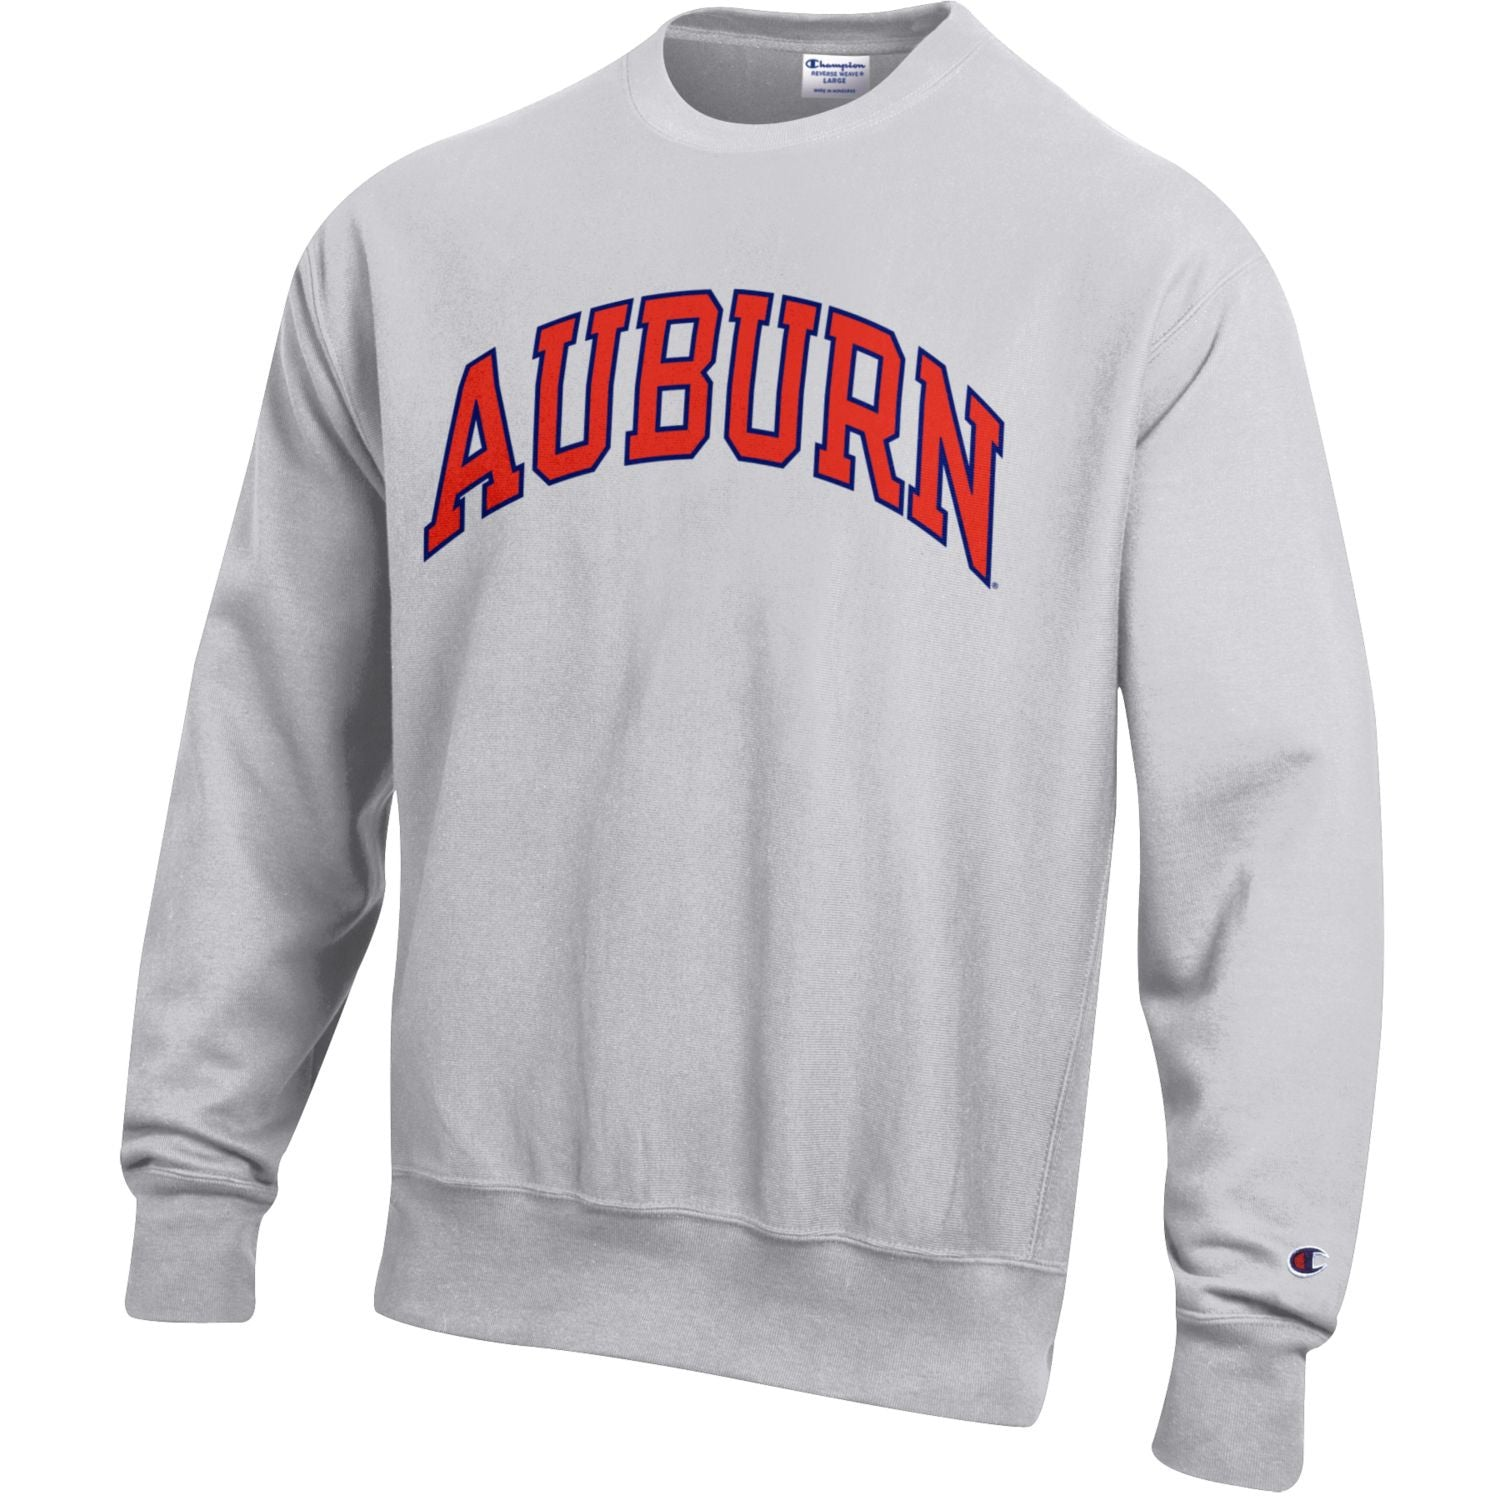 Auburn Tigers Champion Reverse Weave Sweater